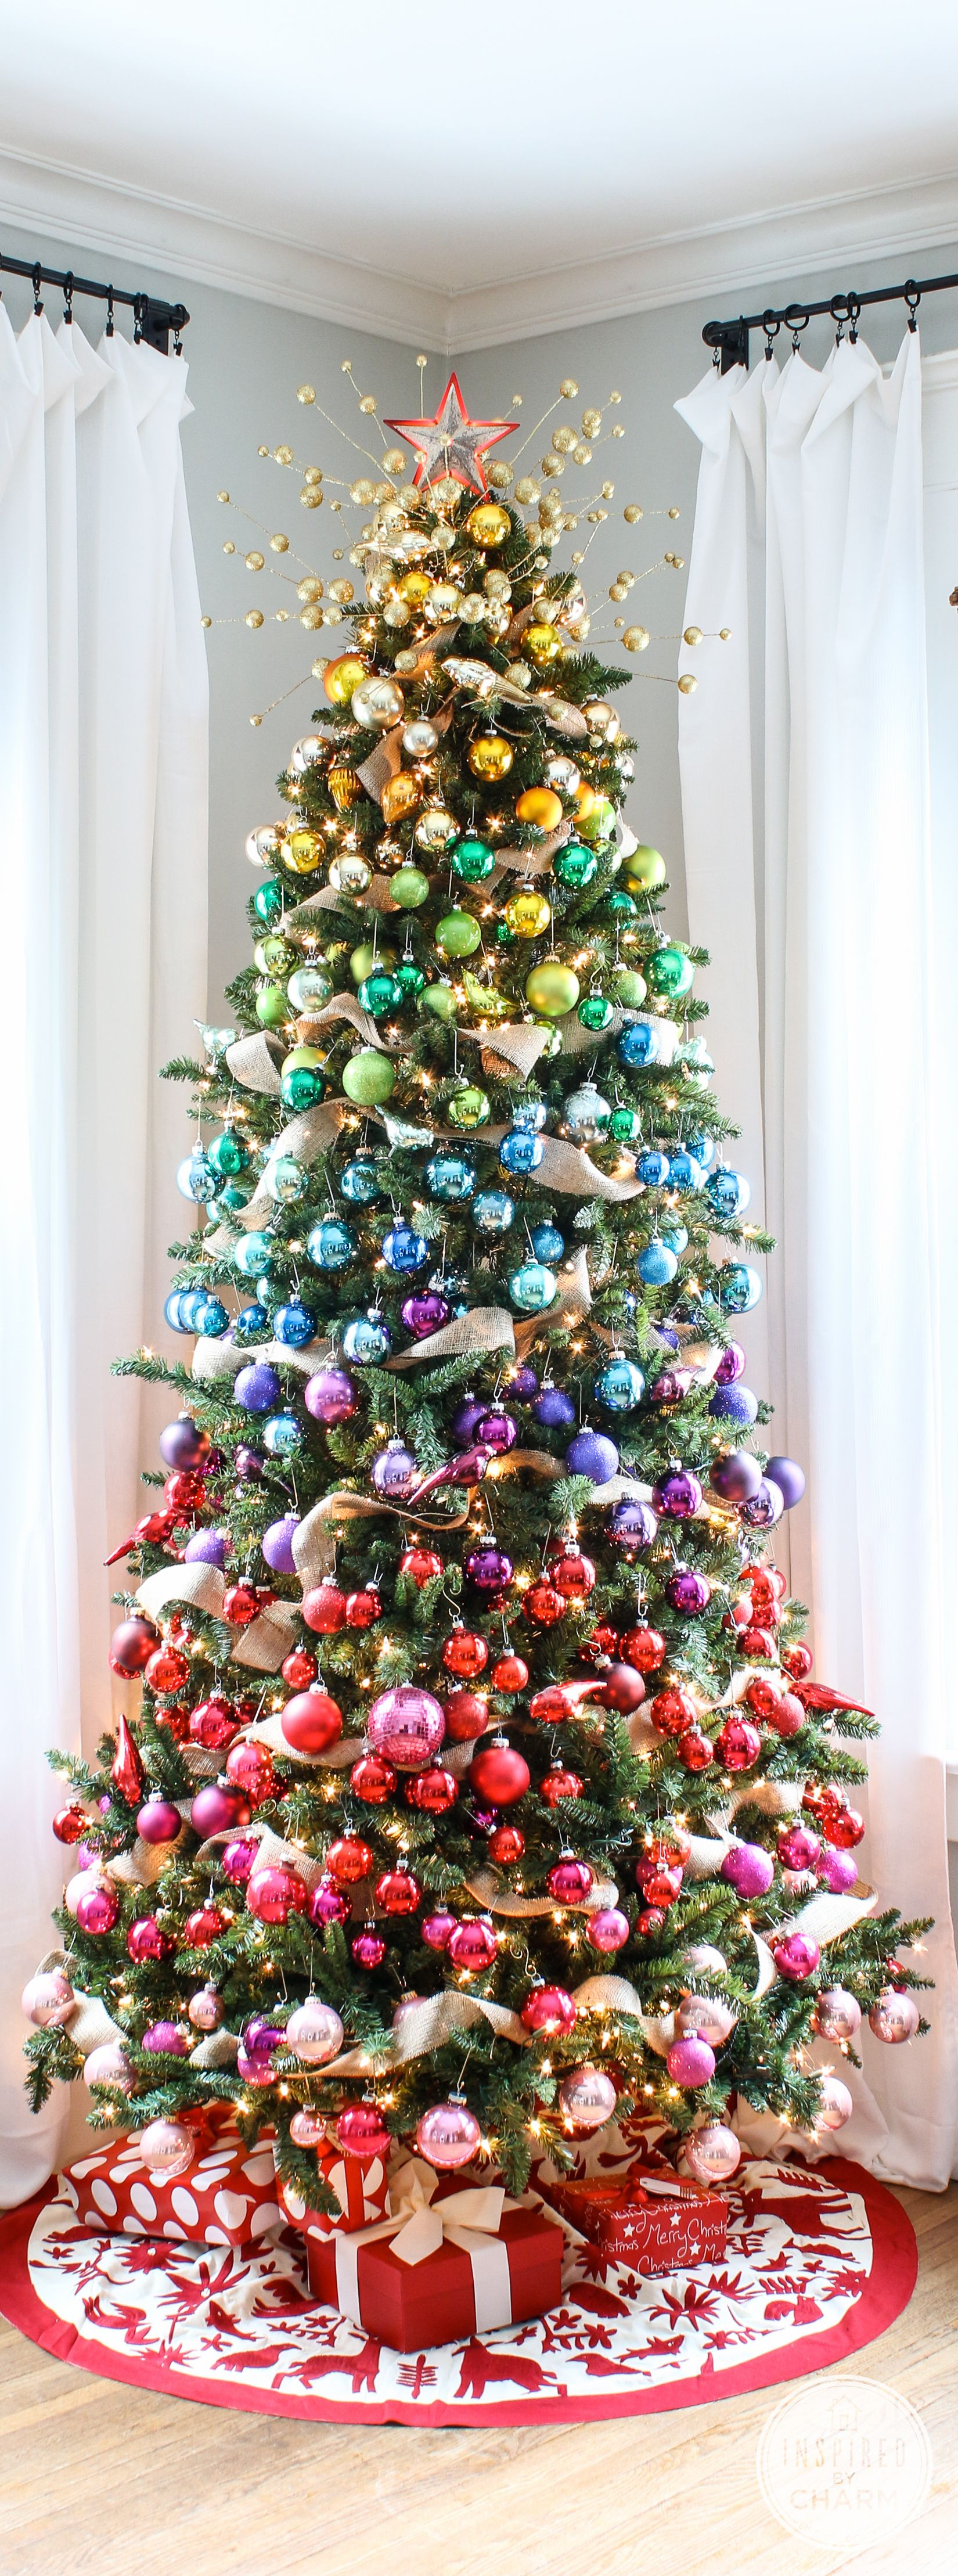 A Colorful Christmas Tree Idea Gradient Christmas Tree I Like This And Think It S Pr Rainbows Christmas Colorful Christmas Tree Beautiful Christmas Trees